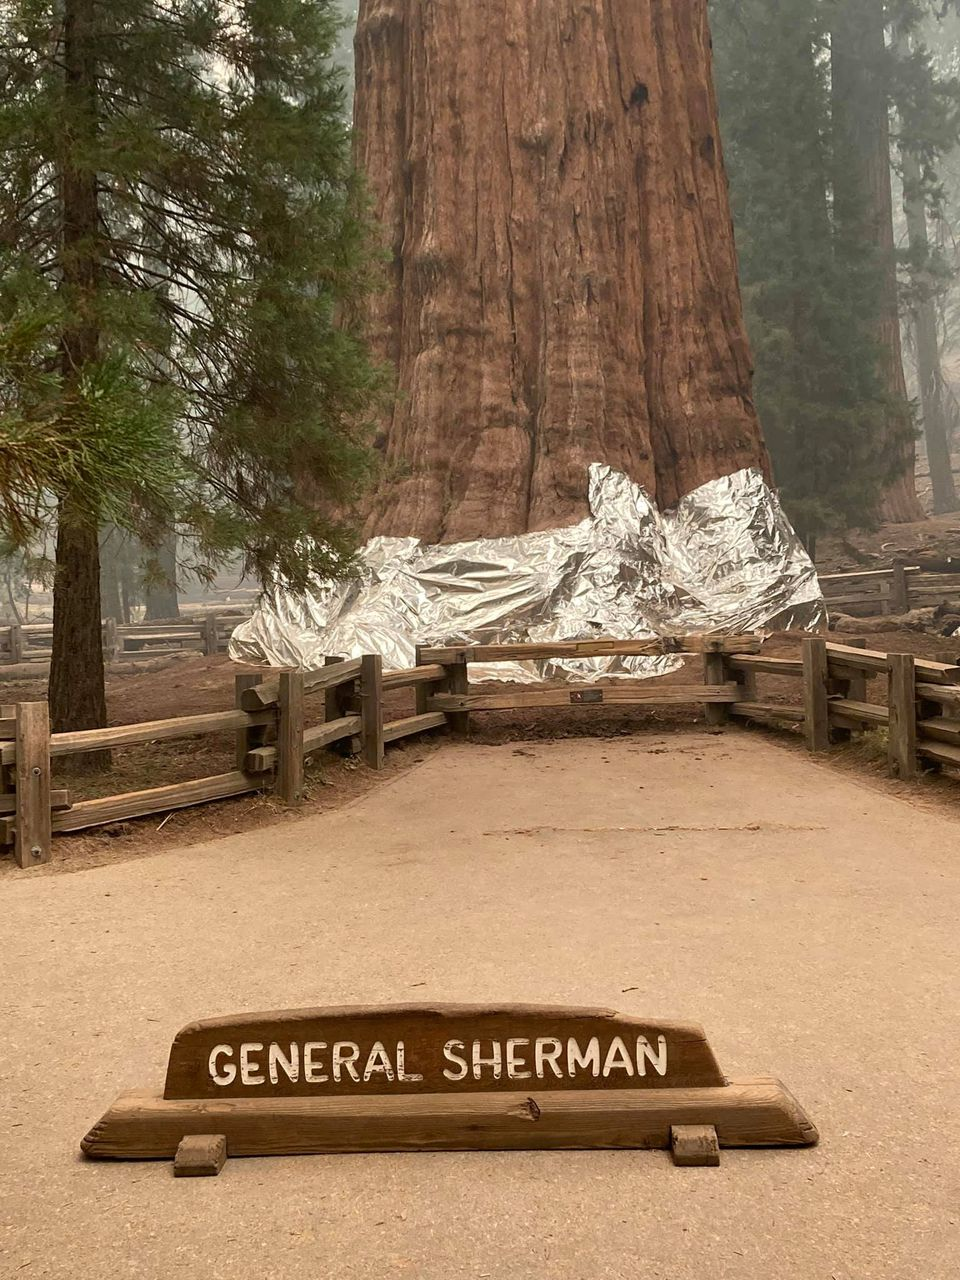 California Fire Crews Protect World's Largest Tree in Fire-resistant Wrap As Wildfires